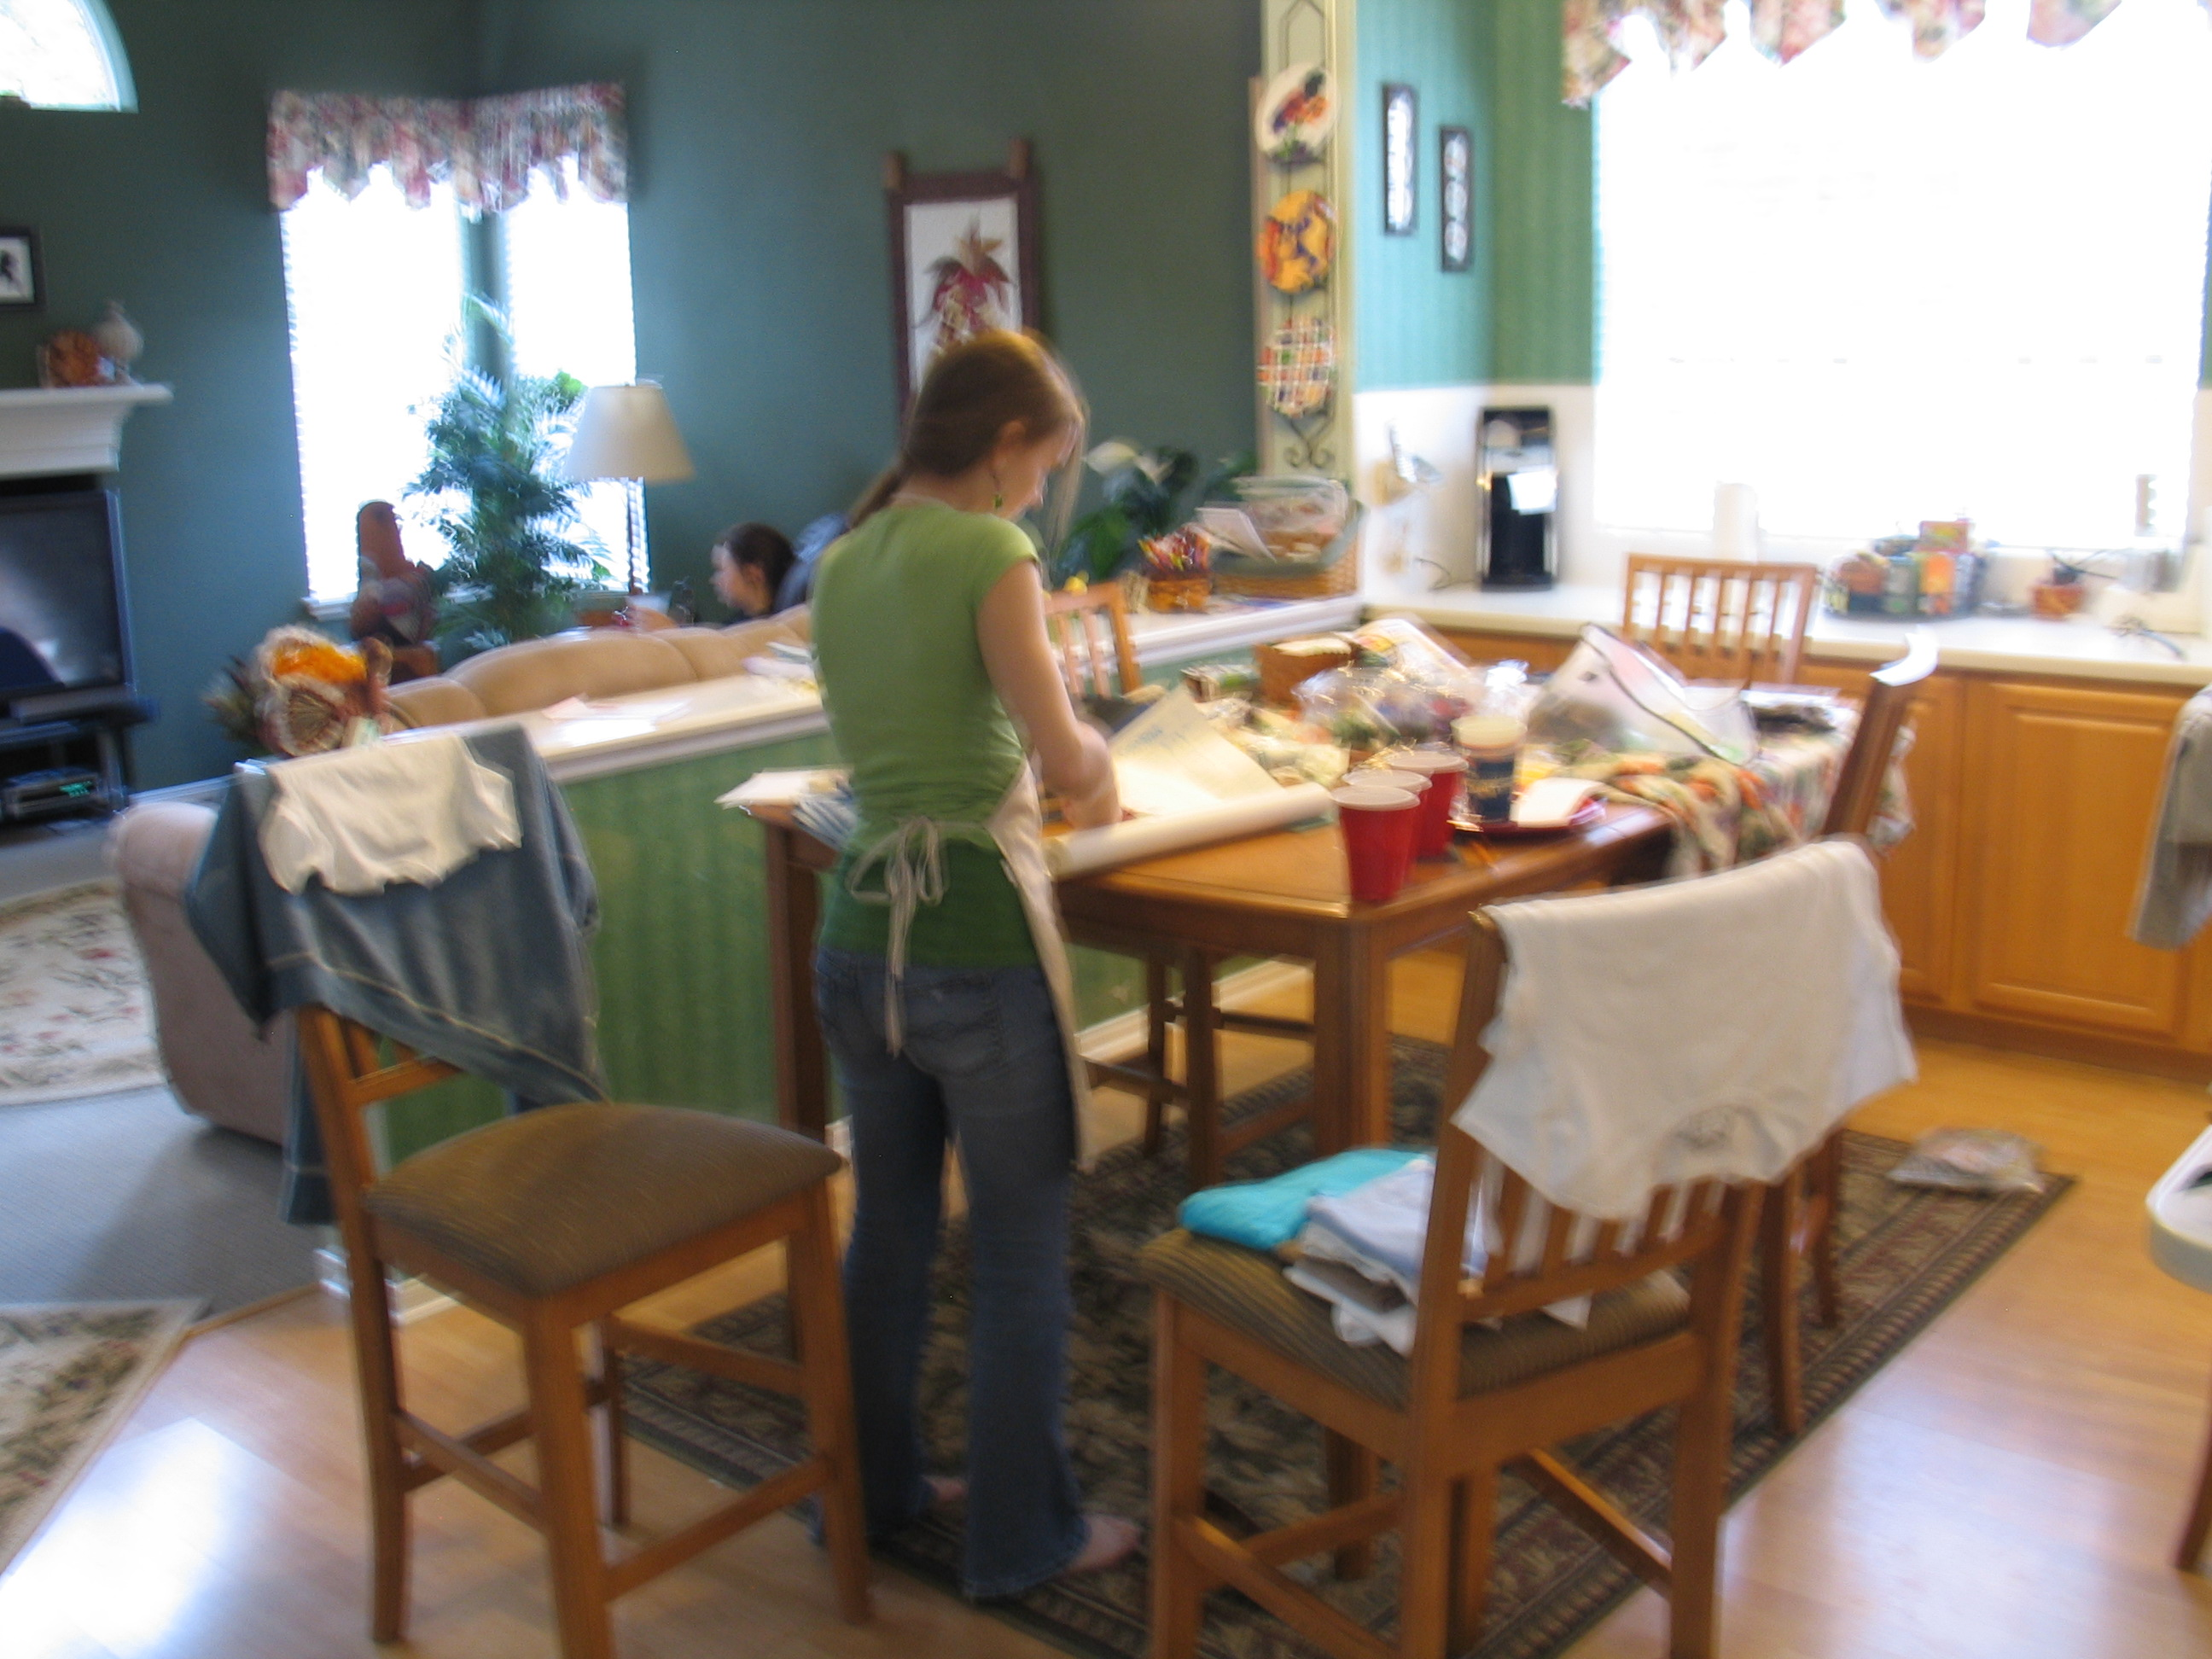 Suzanne working at home with her newly learned Silkscreening skills